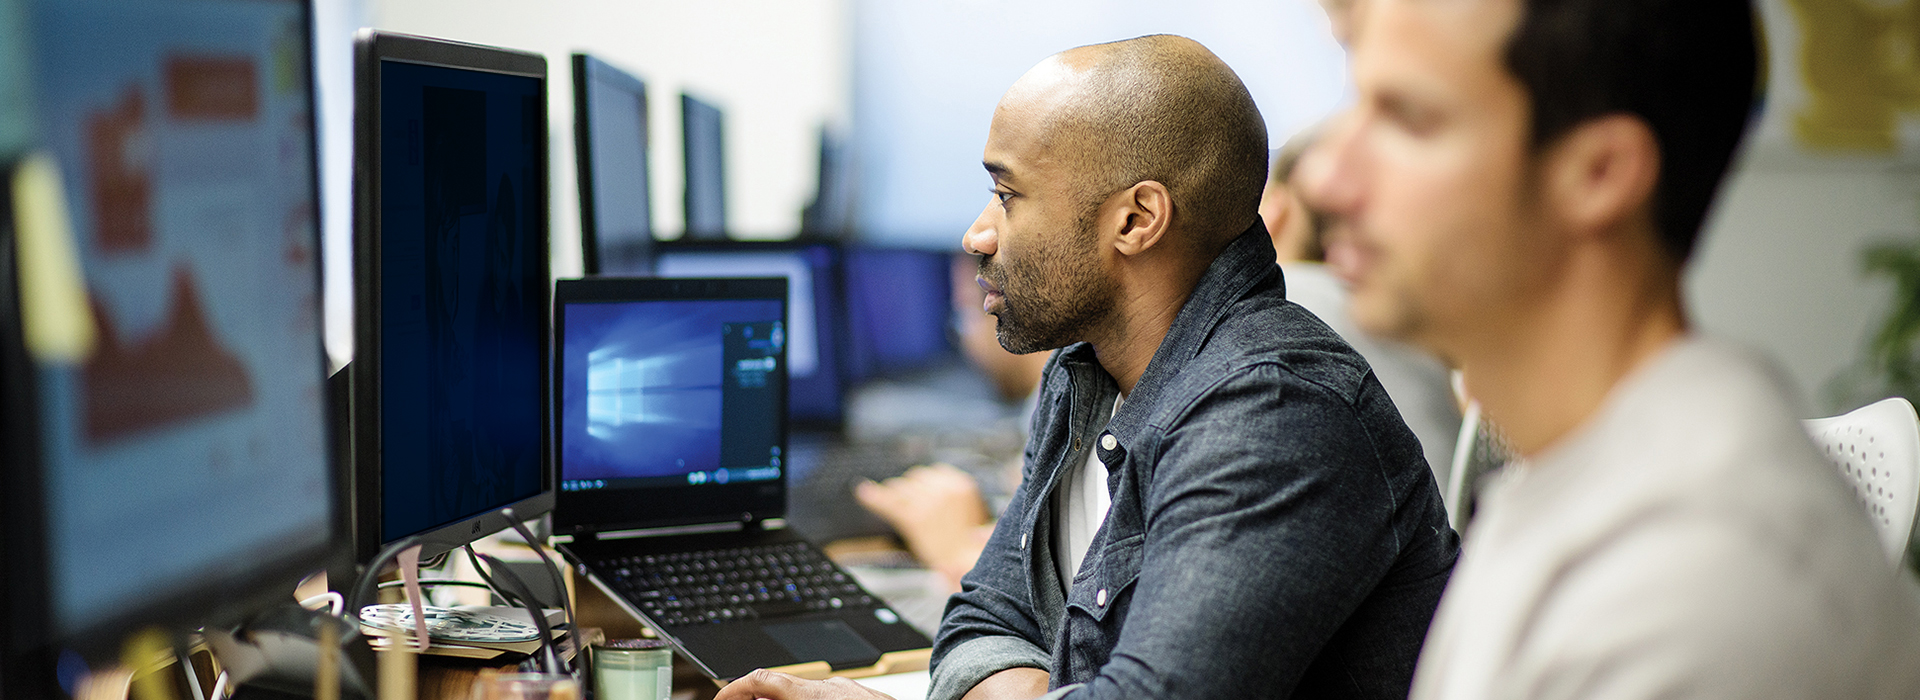 Photo of two Microsoft employees look at a computer monitor